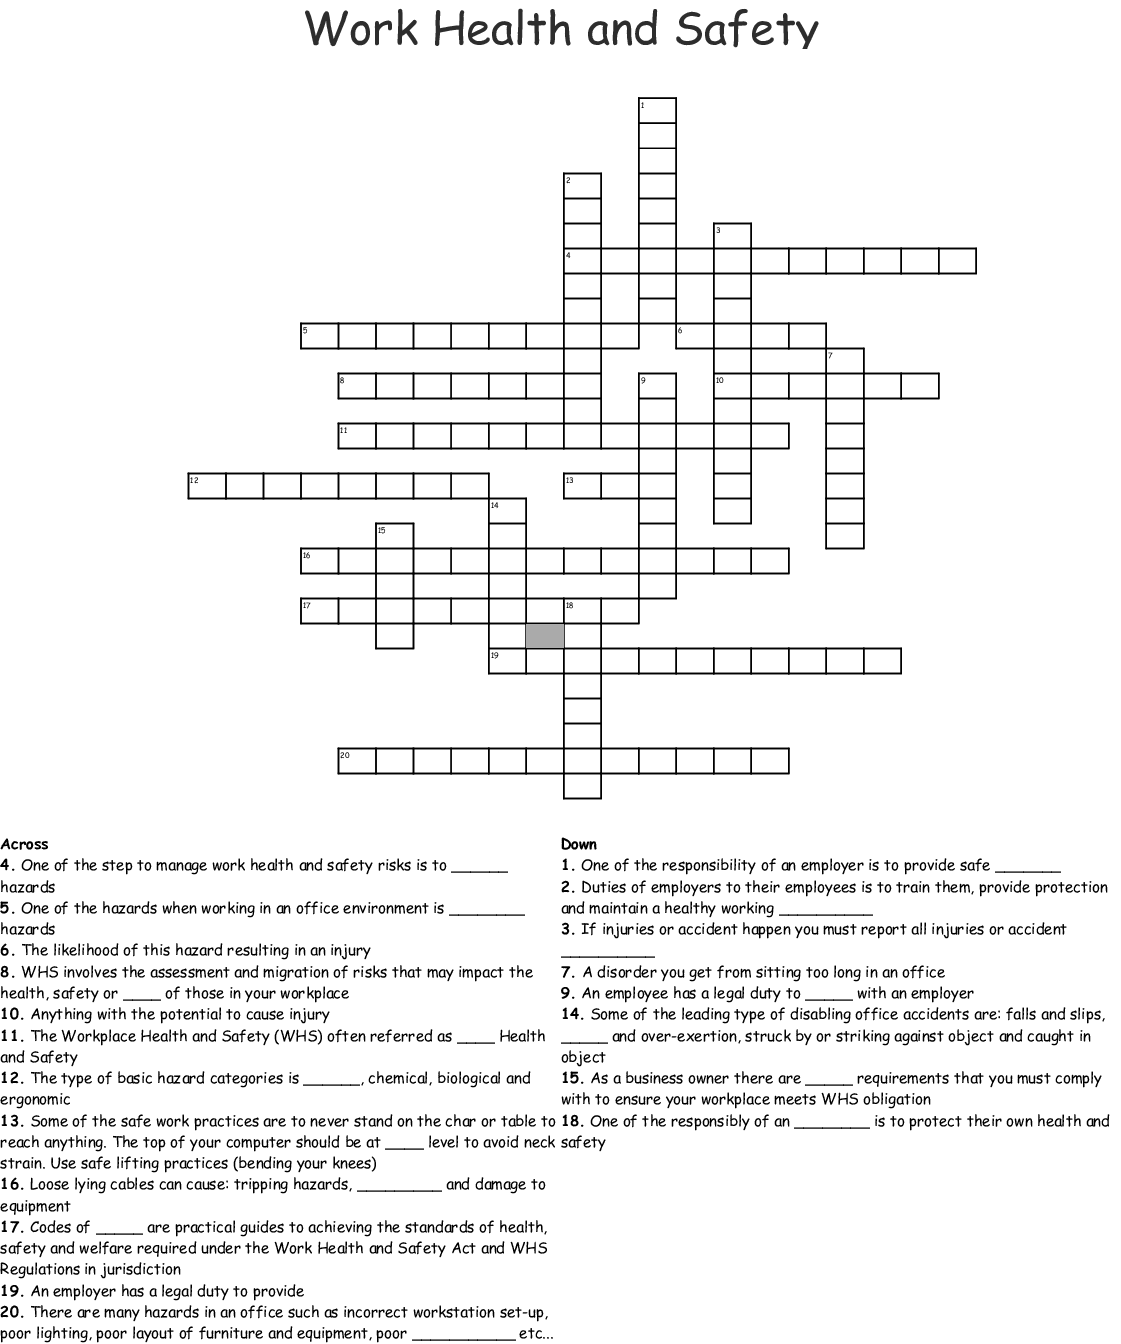 Work Health And Safety Crossword